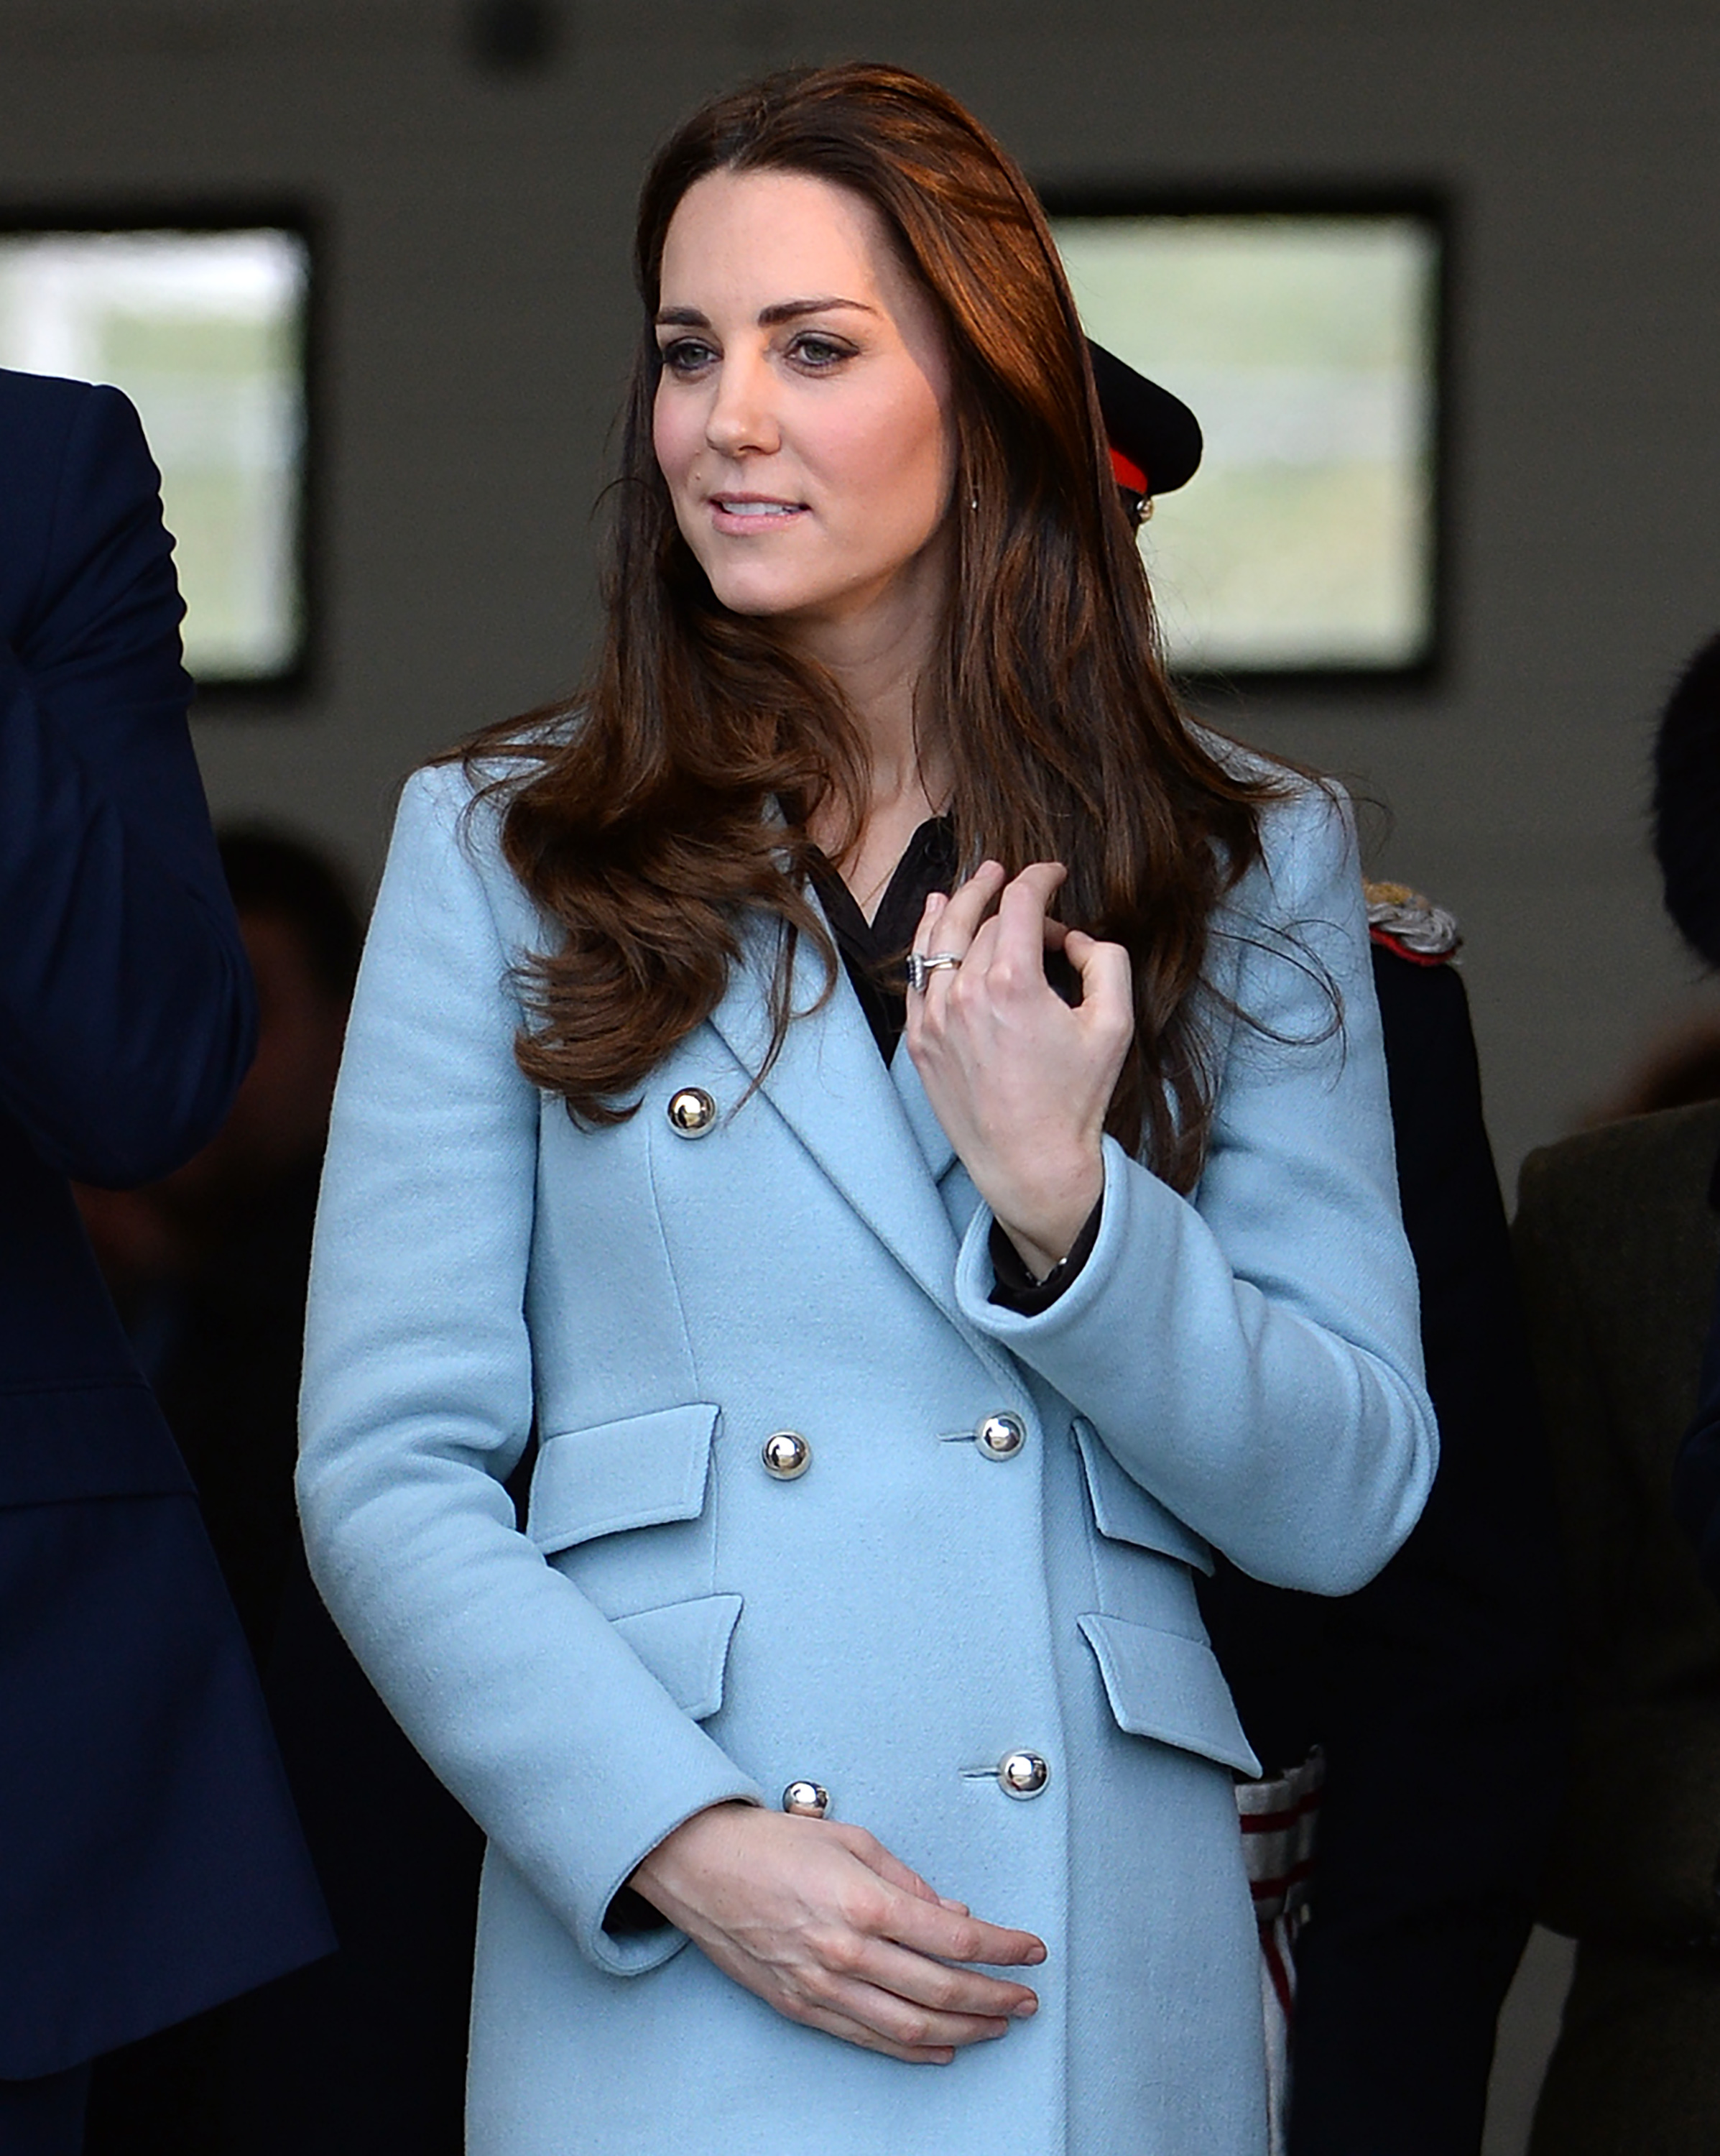 Catherine, Duchess of Cambridge visit the Valero Pembroke Refinery in Dyfed, Wales, on Nov. 8, 2014.